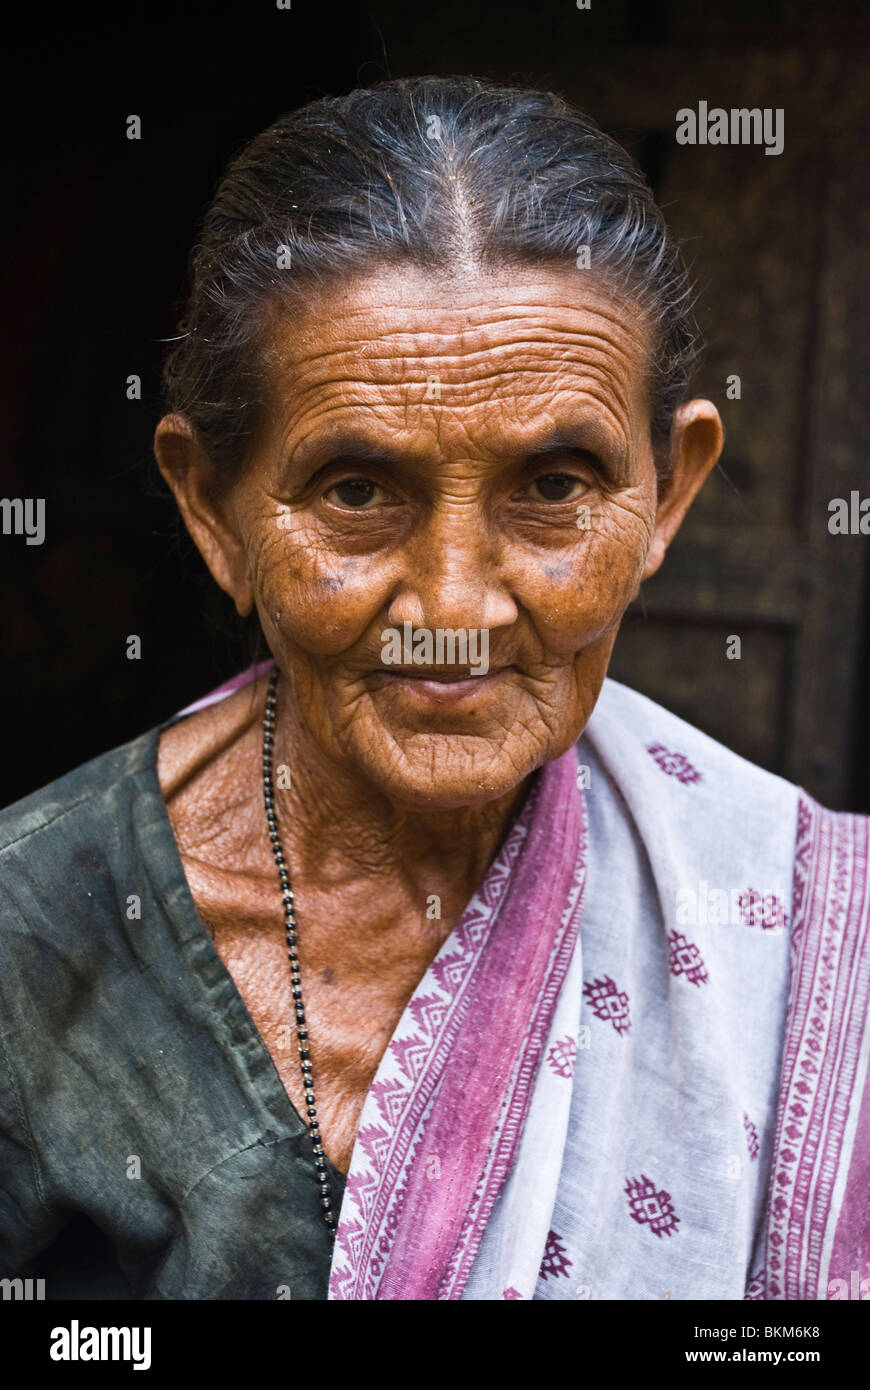 Indian old women with wrinkle face - Stock Image